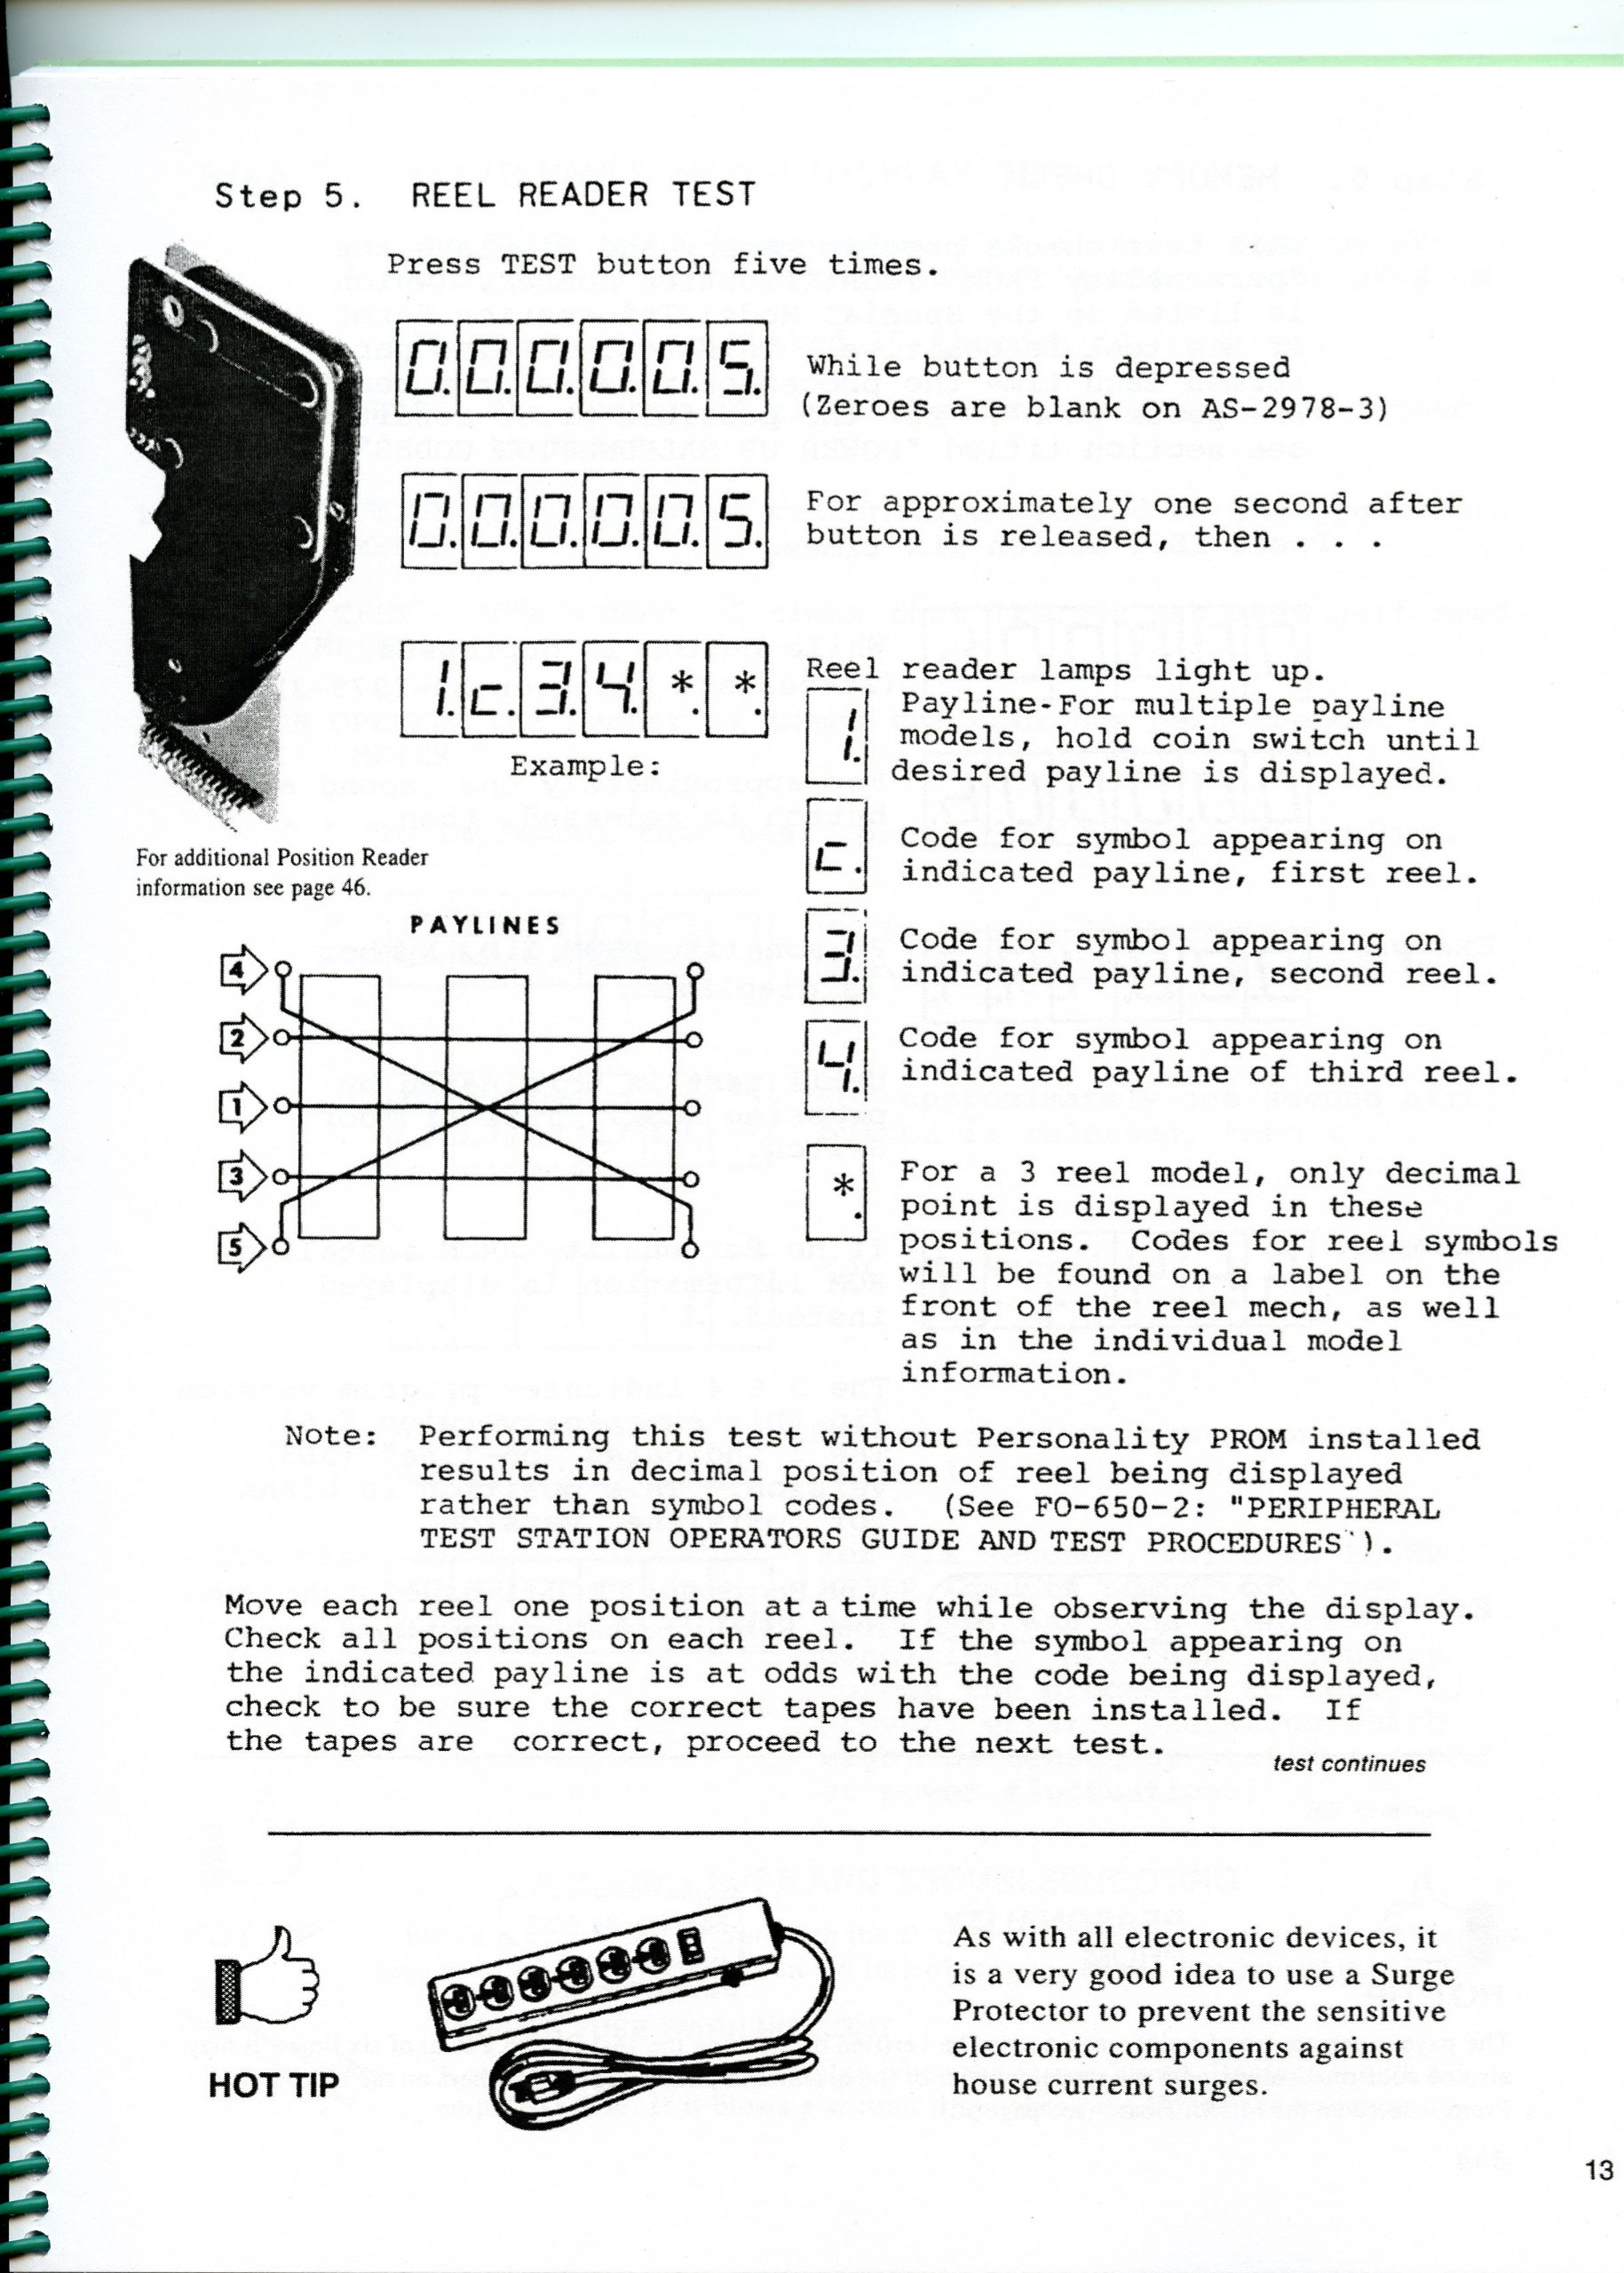 Bally slot machines the complete service manual for series e 1980 bally slot machines the complete service manual for series e 1980 1986 marshall fey 9780962385230 amazon books buycottarizona Image collections